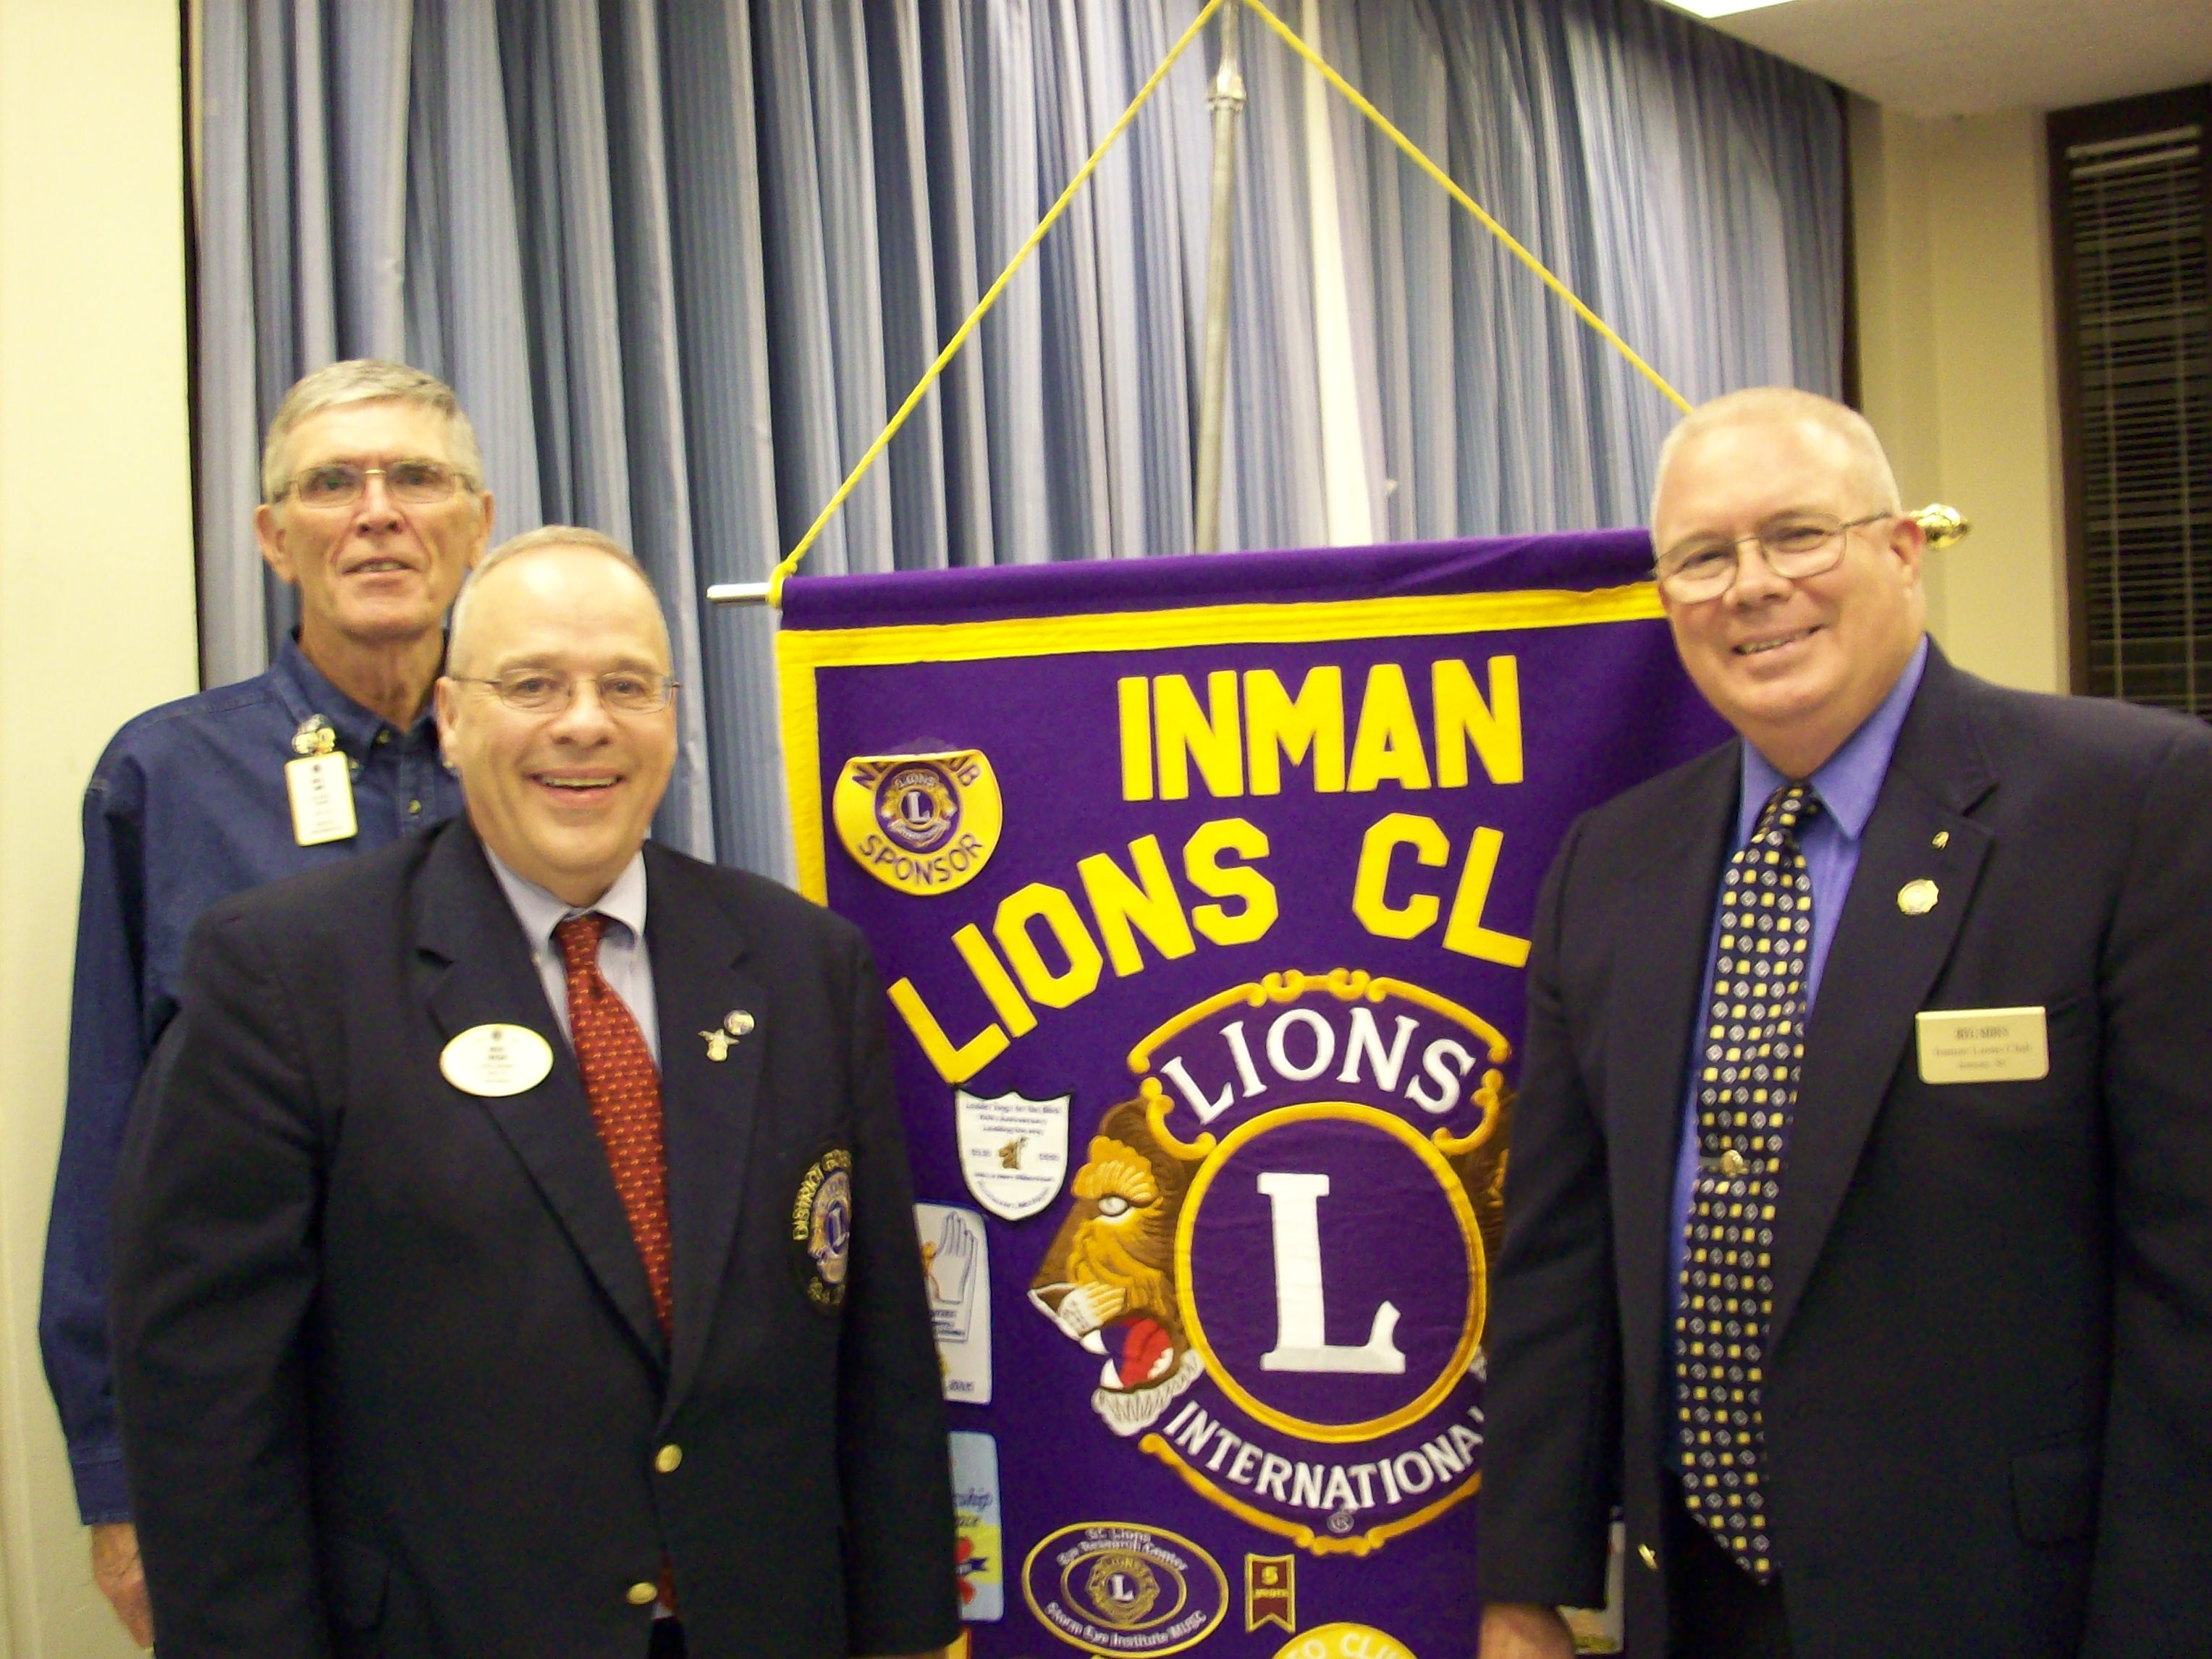 District Governor Lion Dr. Keith Taylor - ILC President Lion Reg Sides